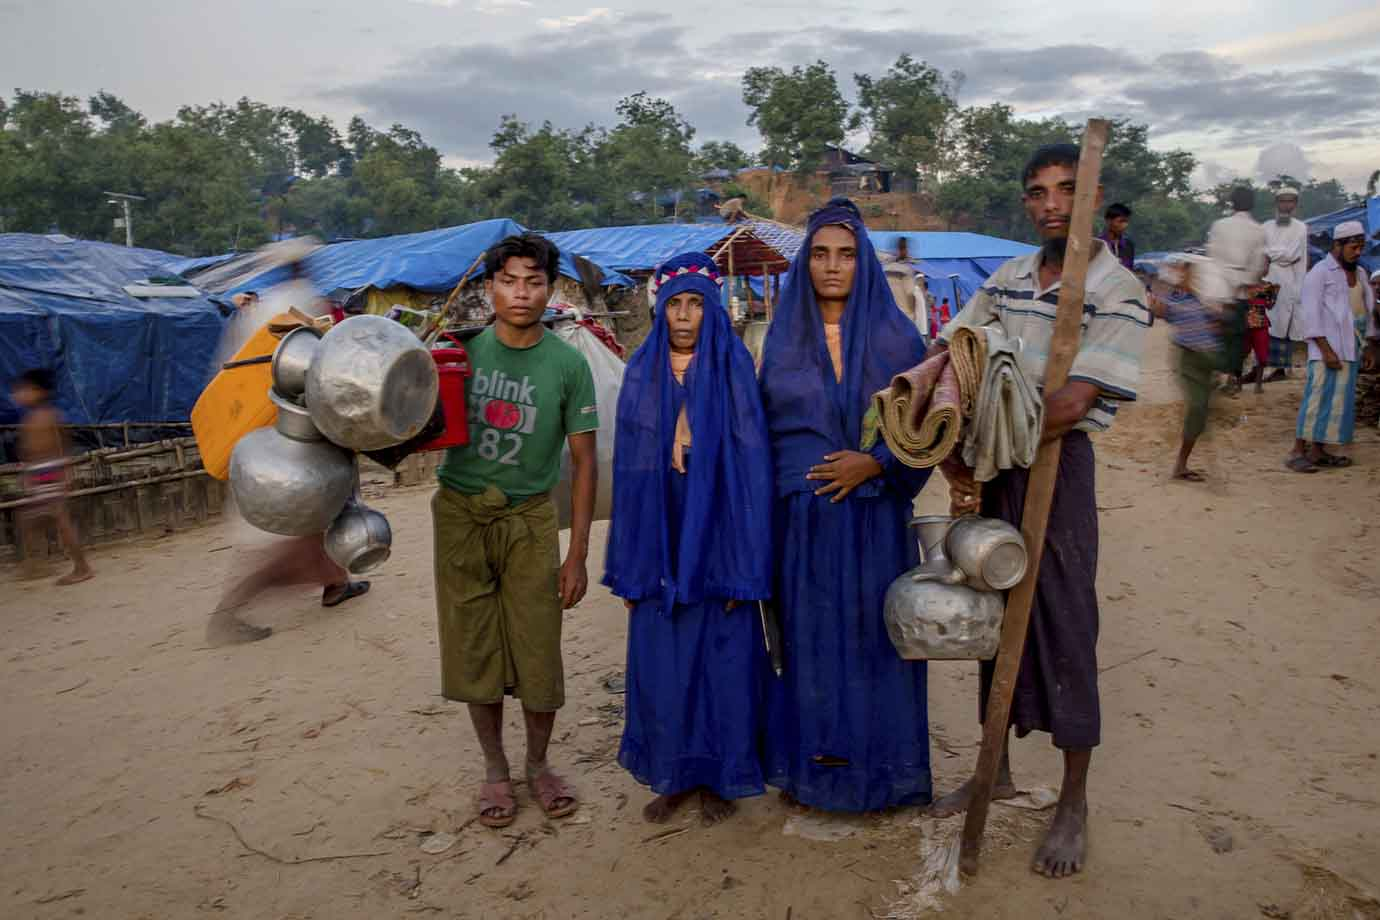 A Rohingya Muslim family, who crossed over from Myanmar into Bangladesh, poses for a picture as they